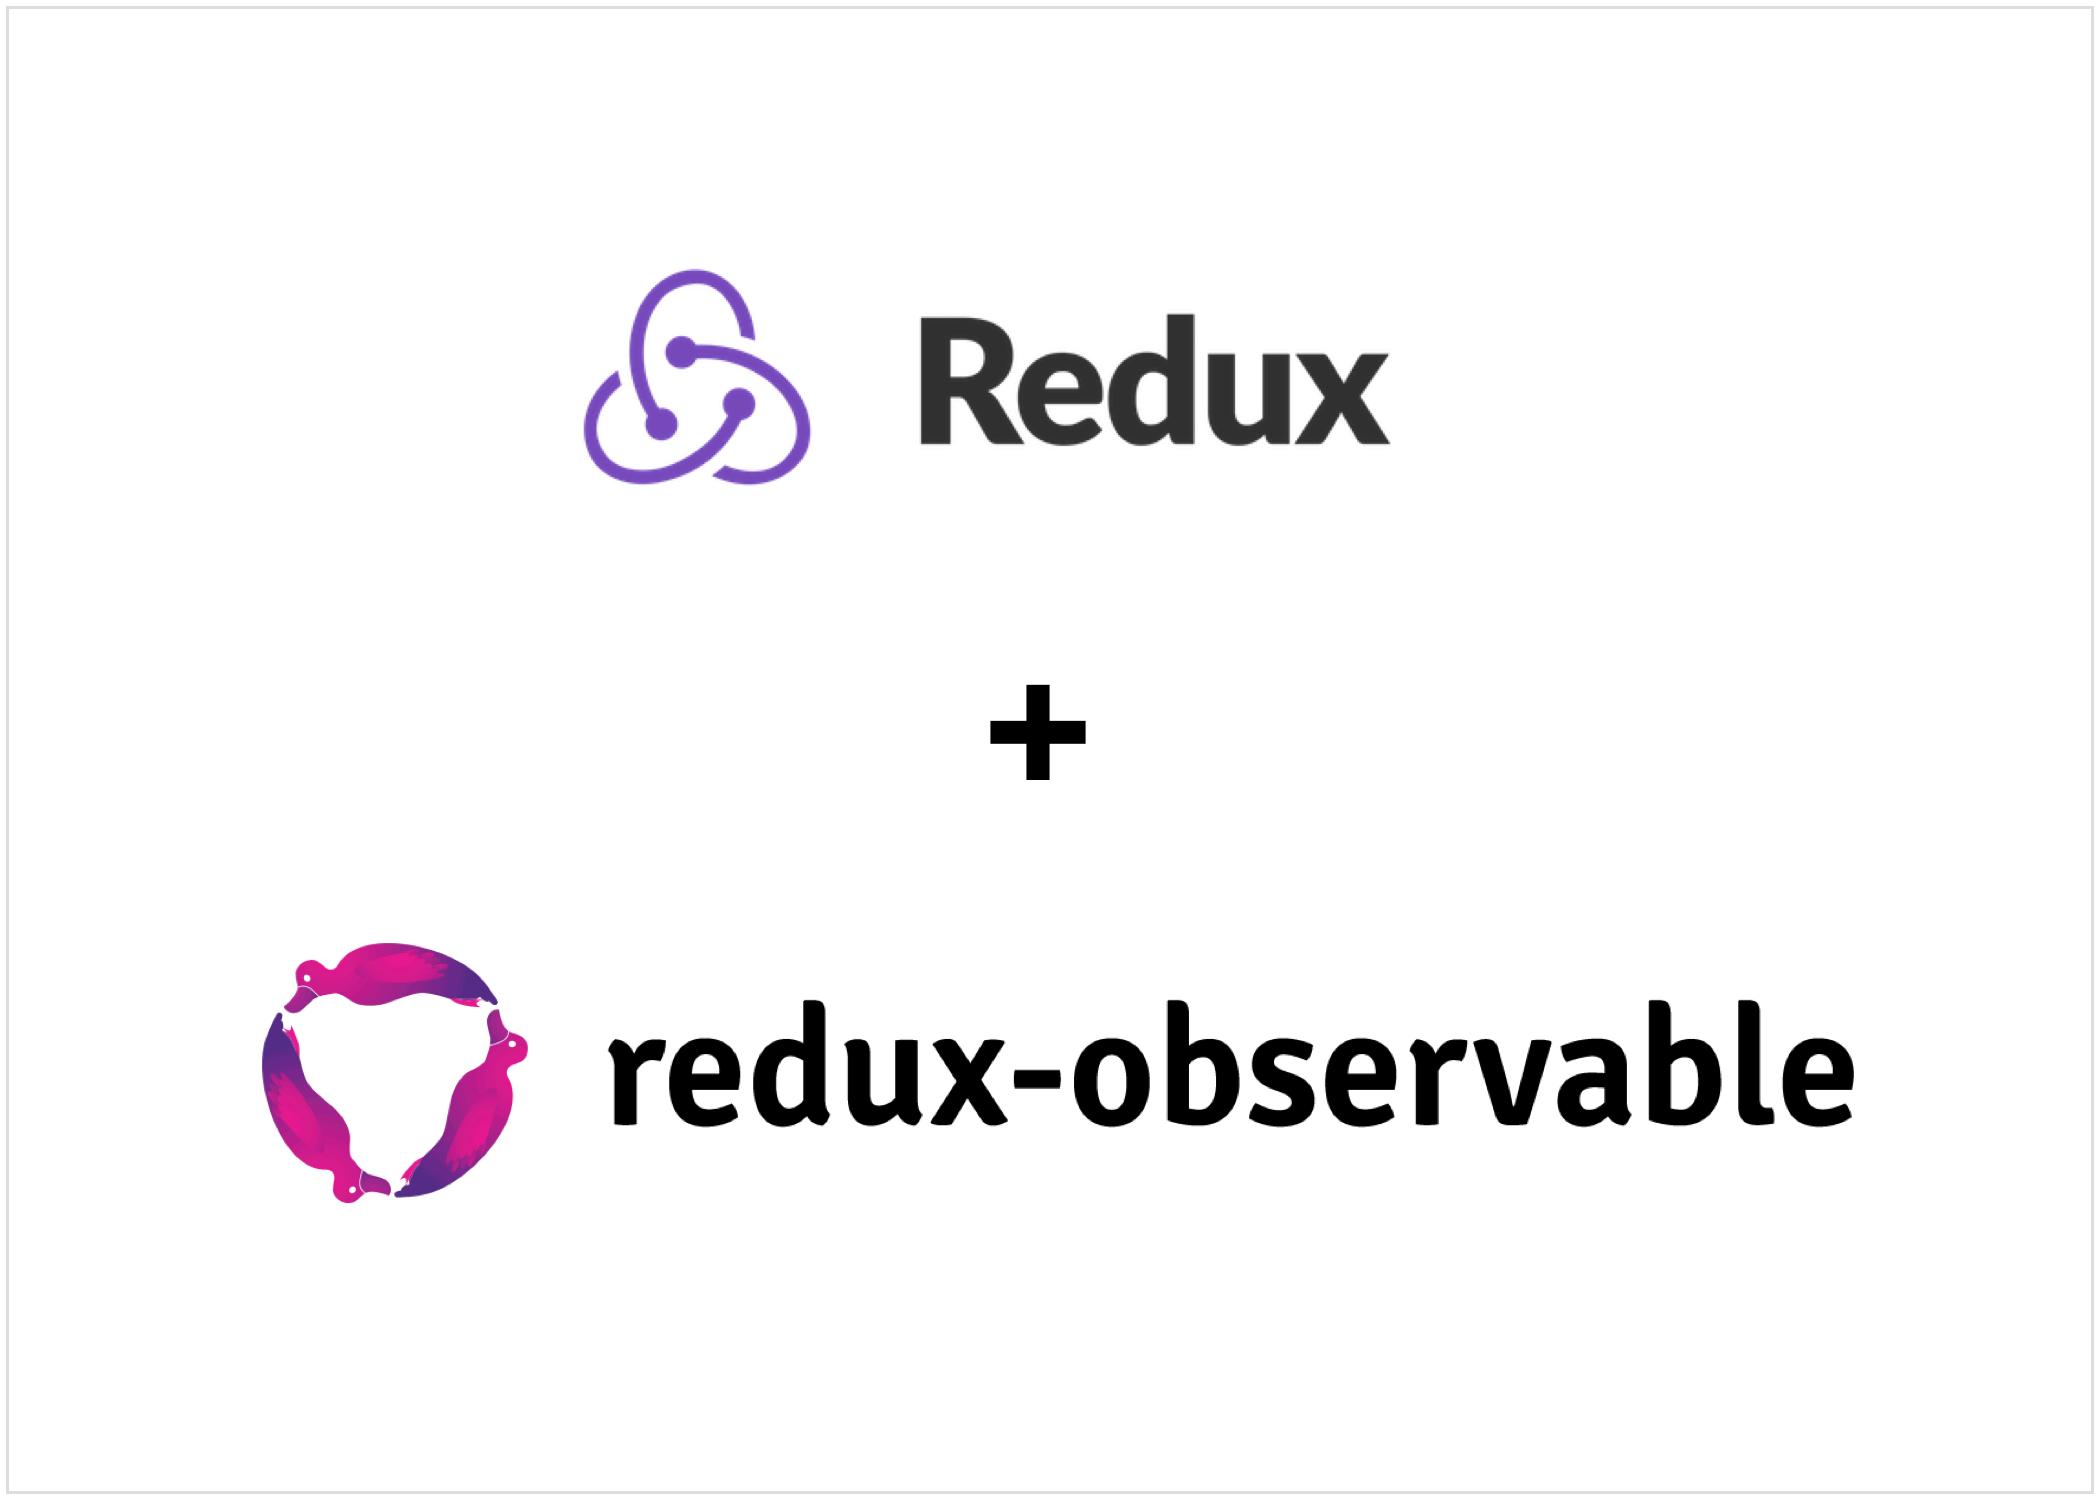 Using redux-observable to handle asynchronous logic in Redux